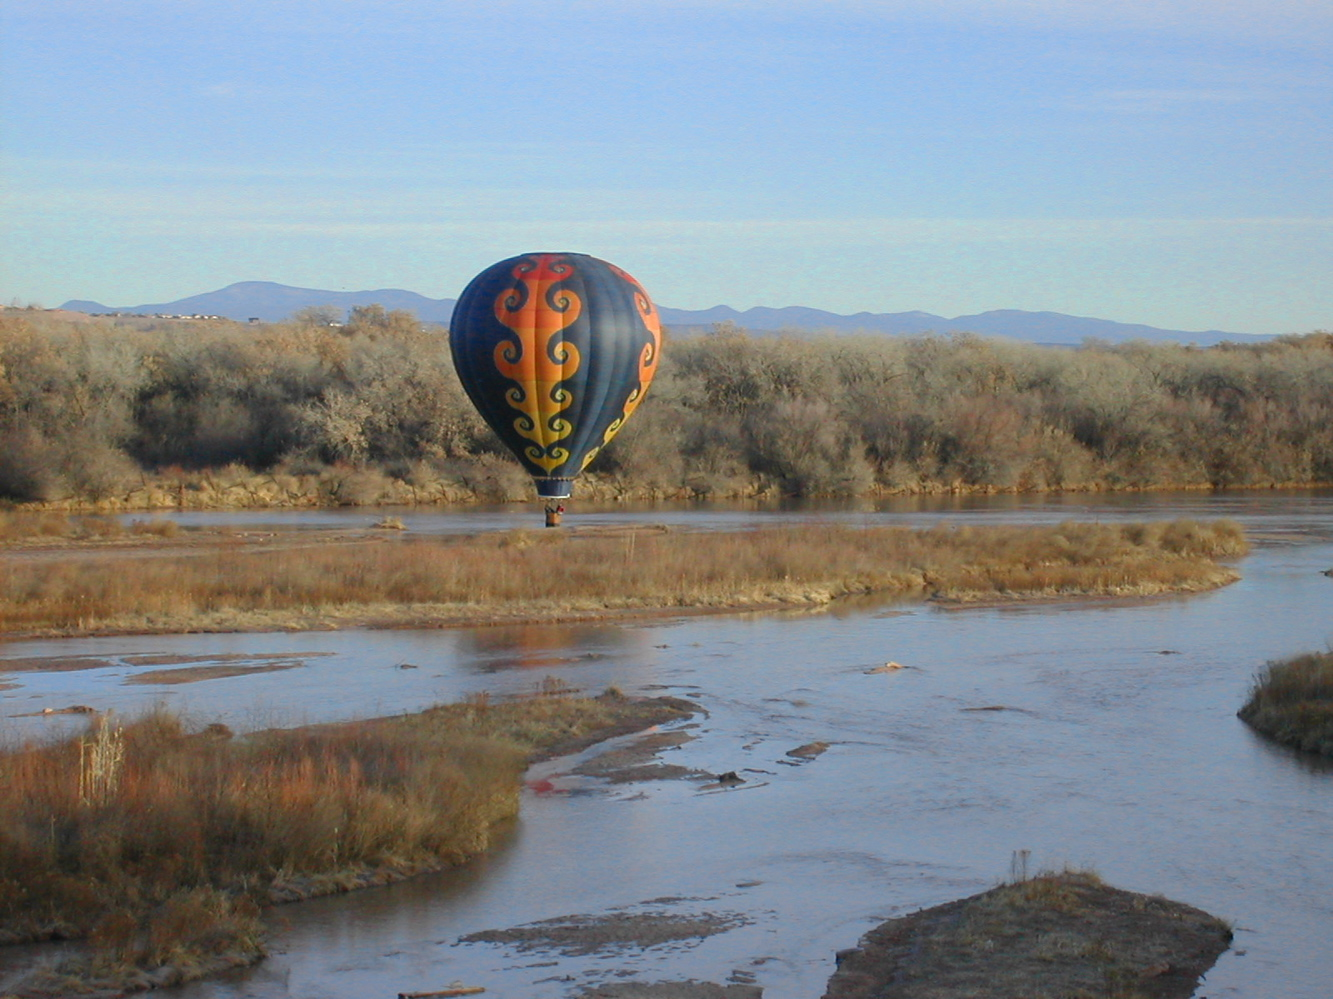 riverflight1-11-04a.jpg